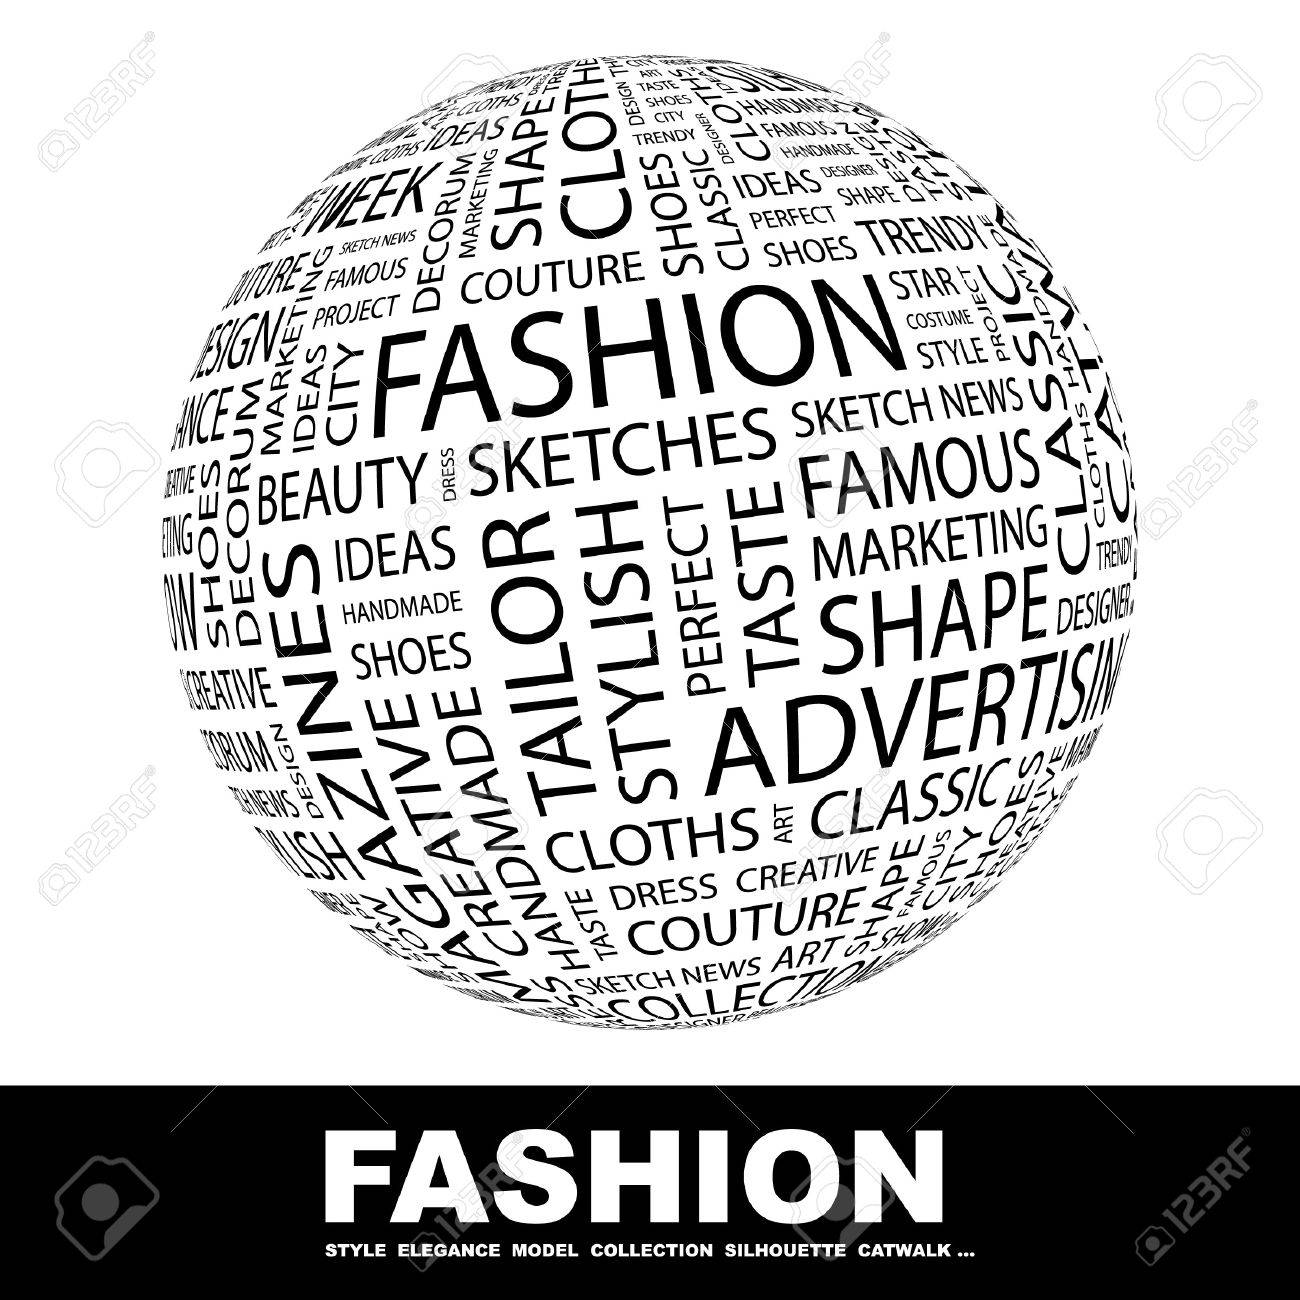 FASHION. Globe with different association terms. Collage with word cloud. Stock Photo - 7995140